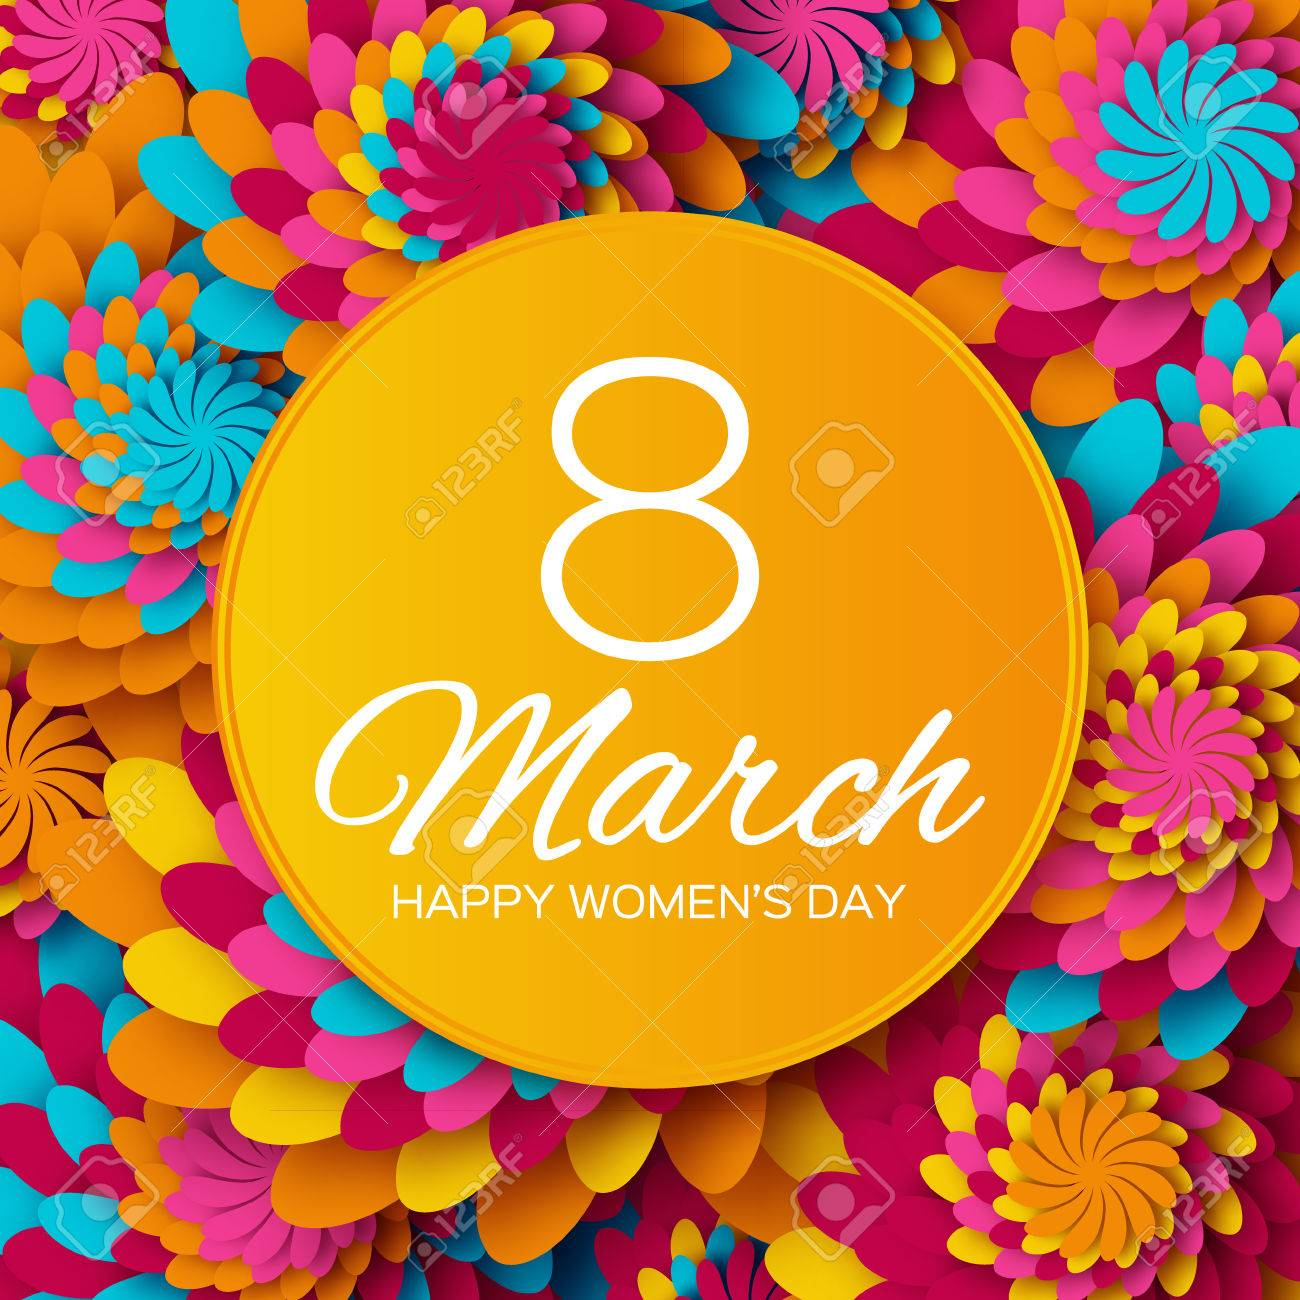 Abstract Colorful Floral Greeting card - International Happy Women's Day - 8 March holiday background with paper cut Frame Flowers. - 52891249